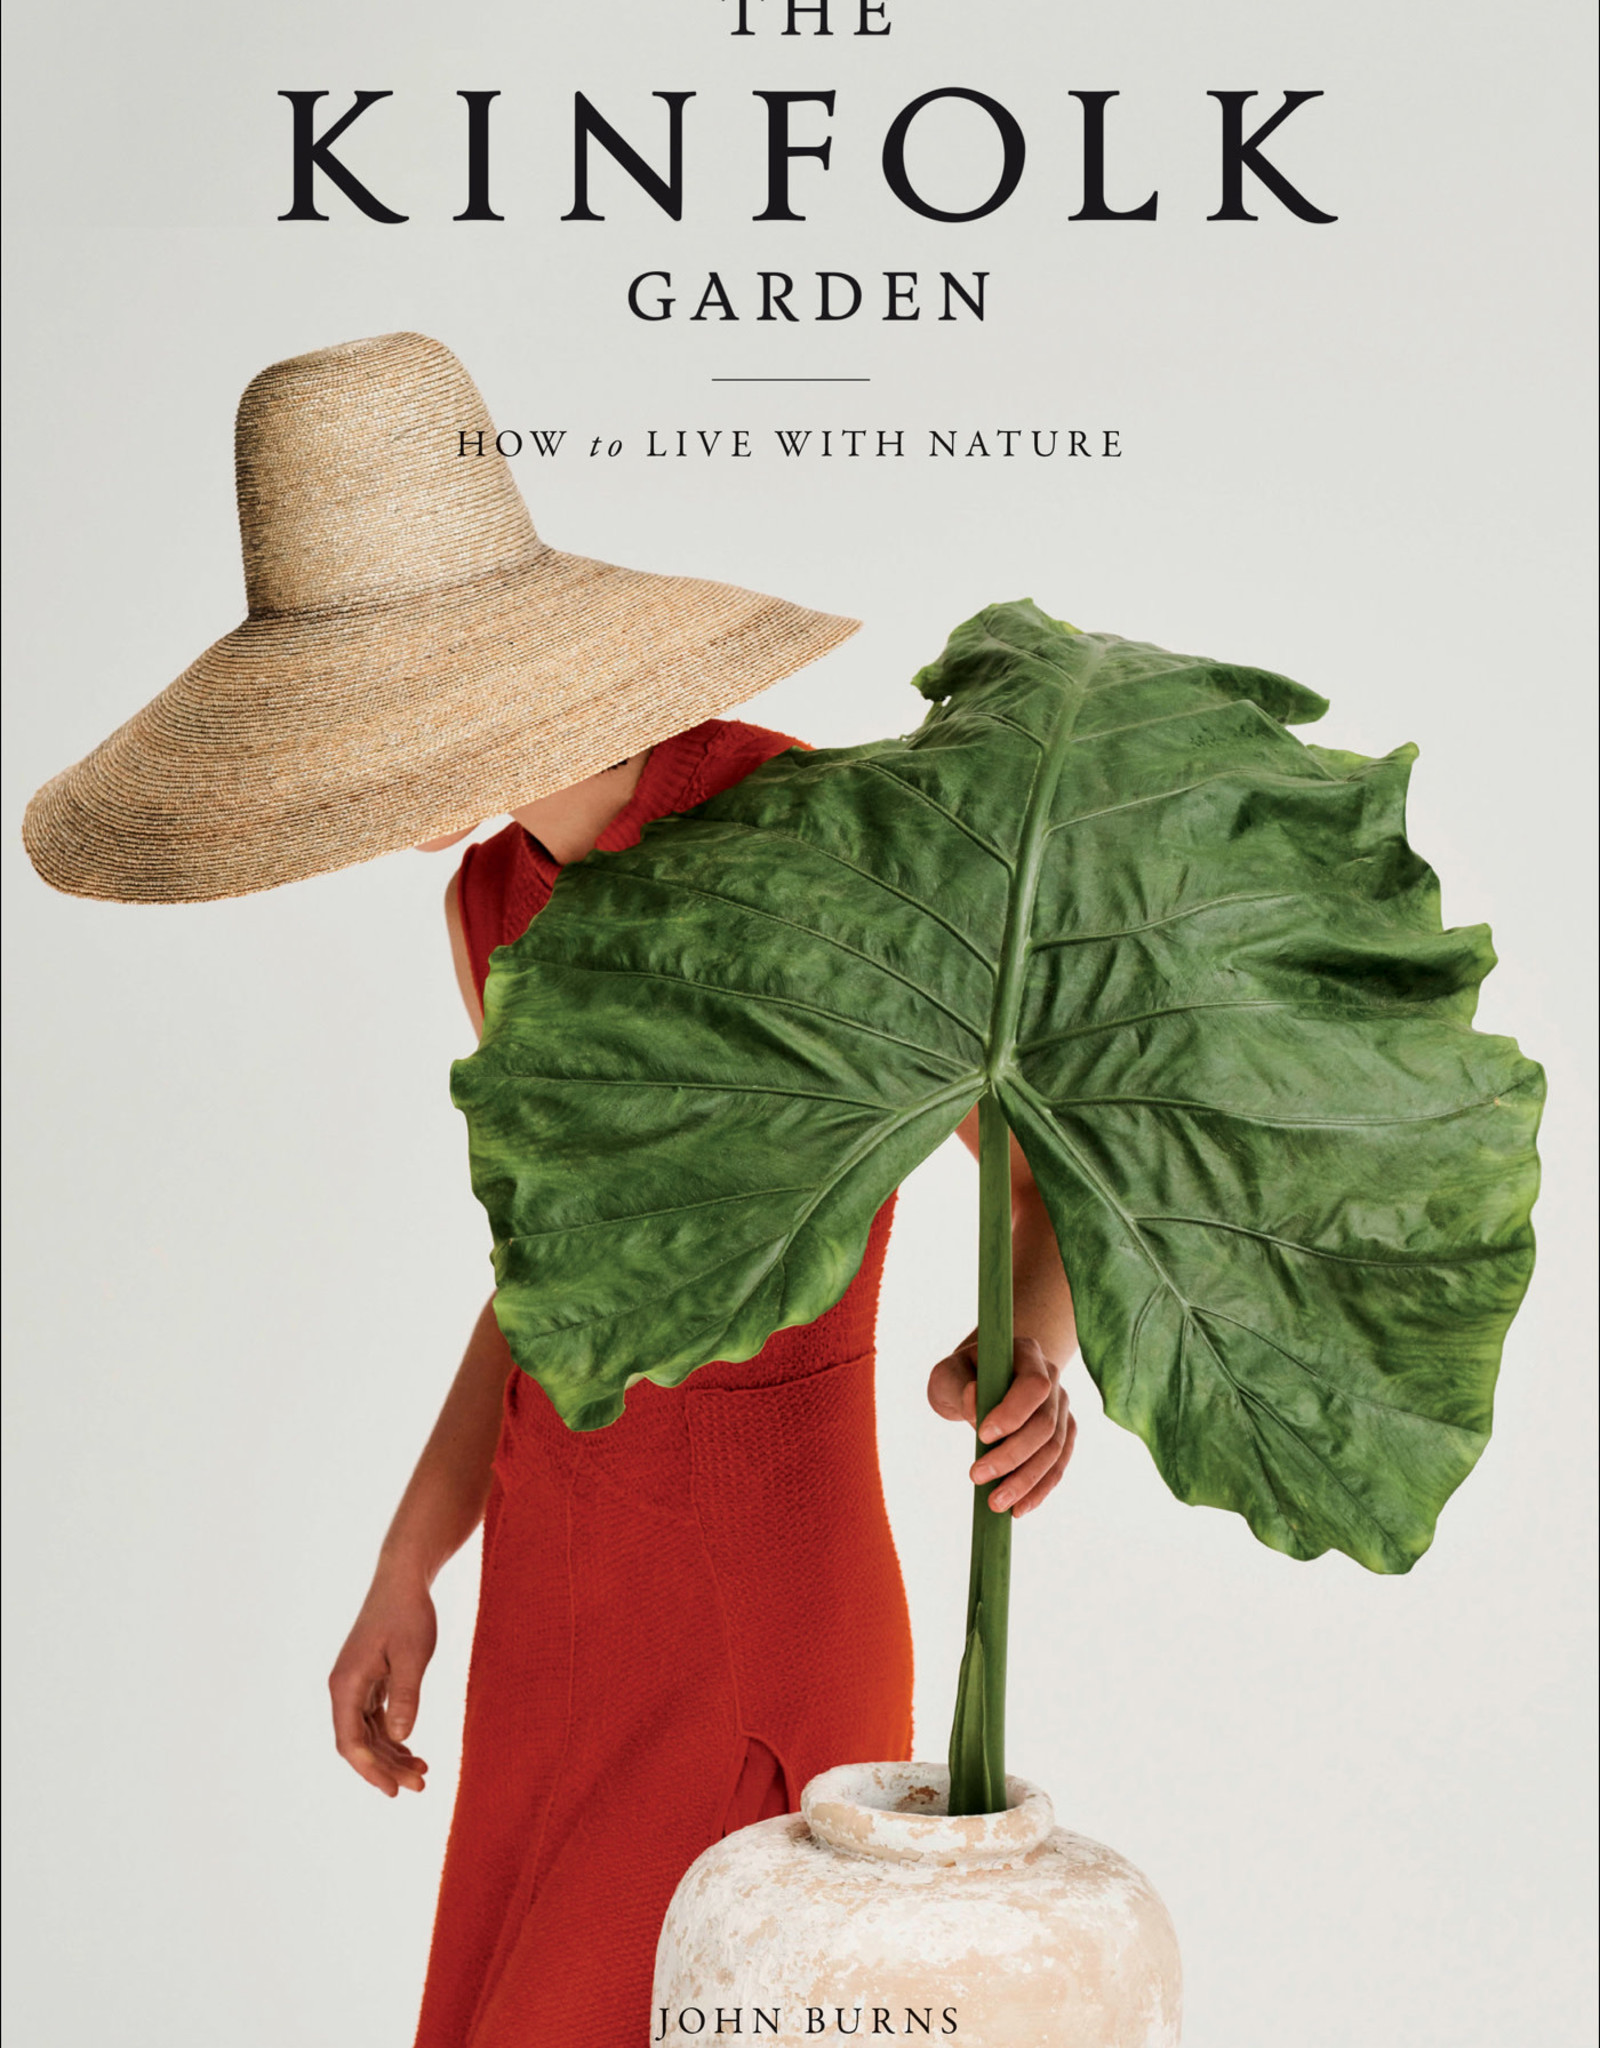 The Kinfolk Garden - How to Live with Nature